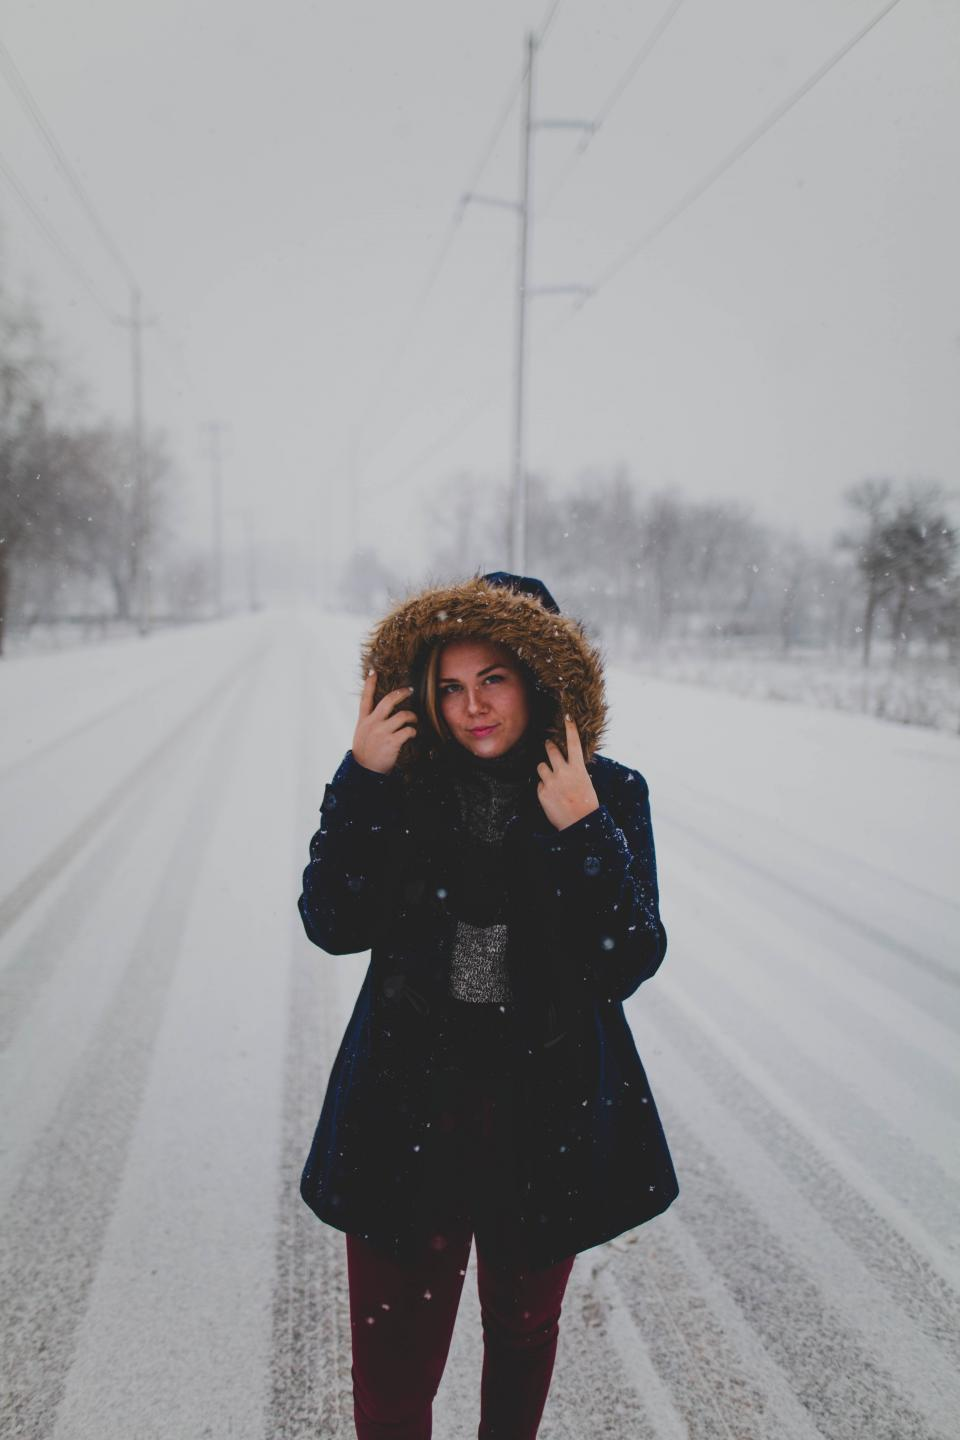 road path snow winter people woman girl clothing outdoor travel